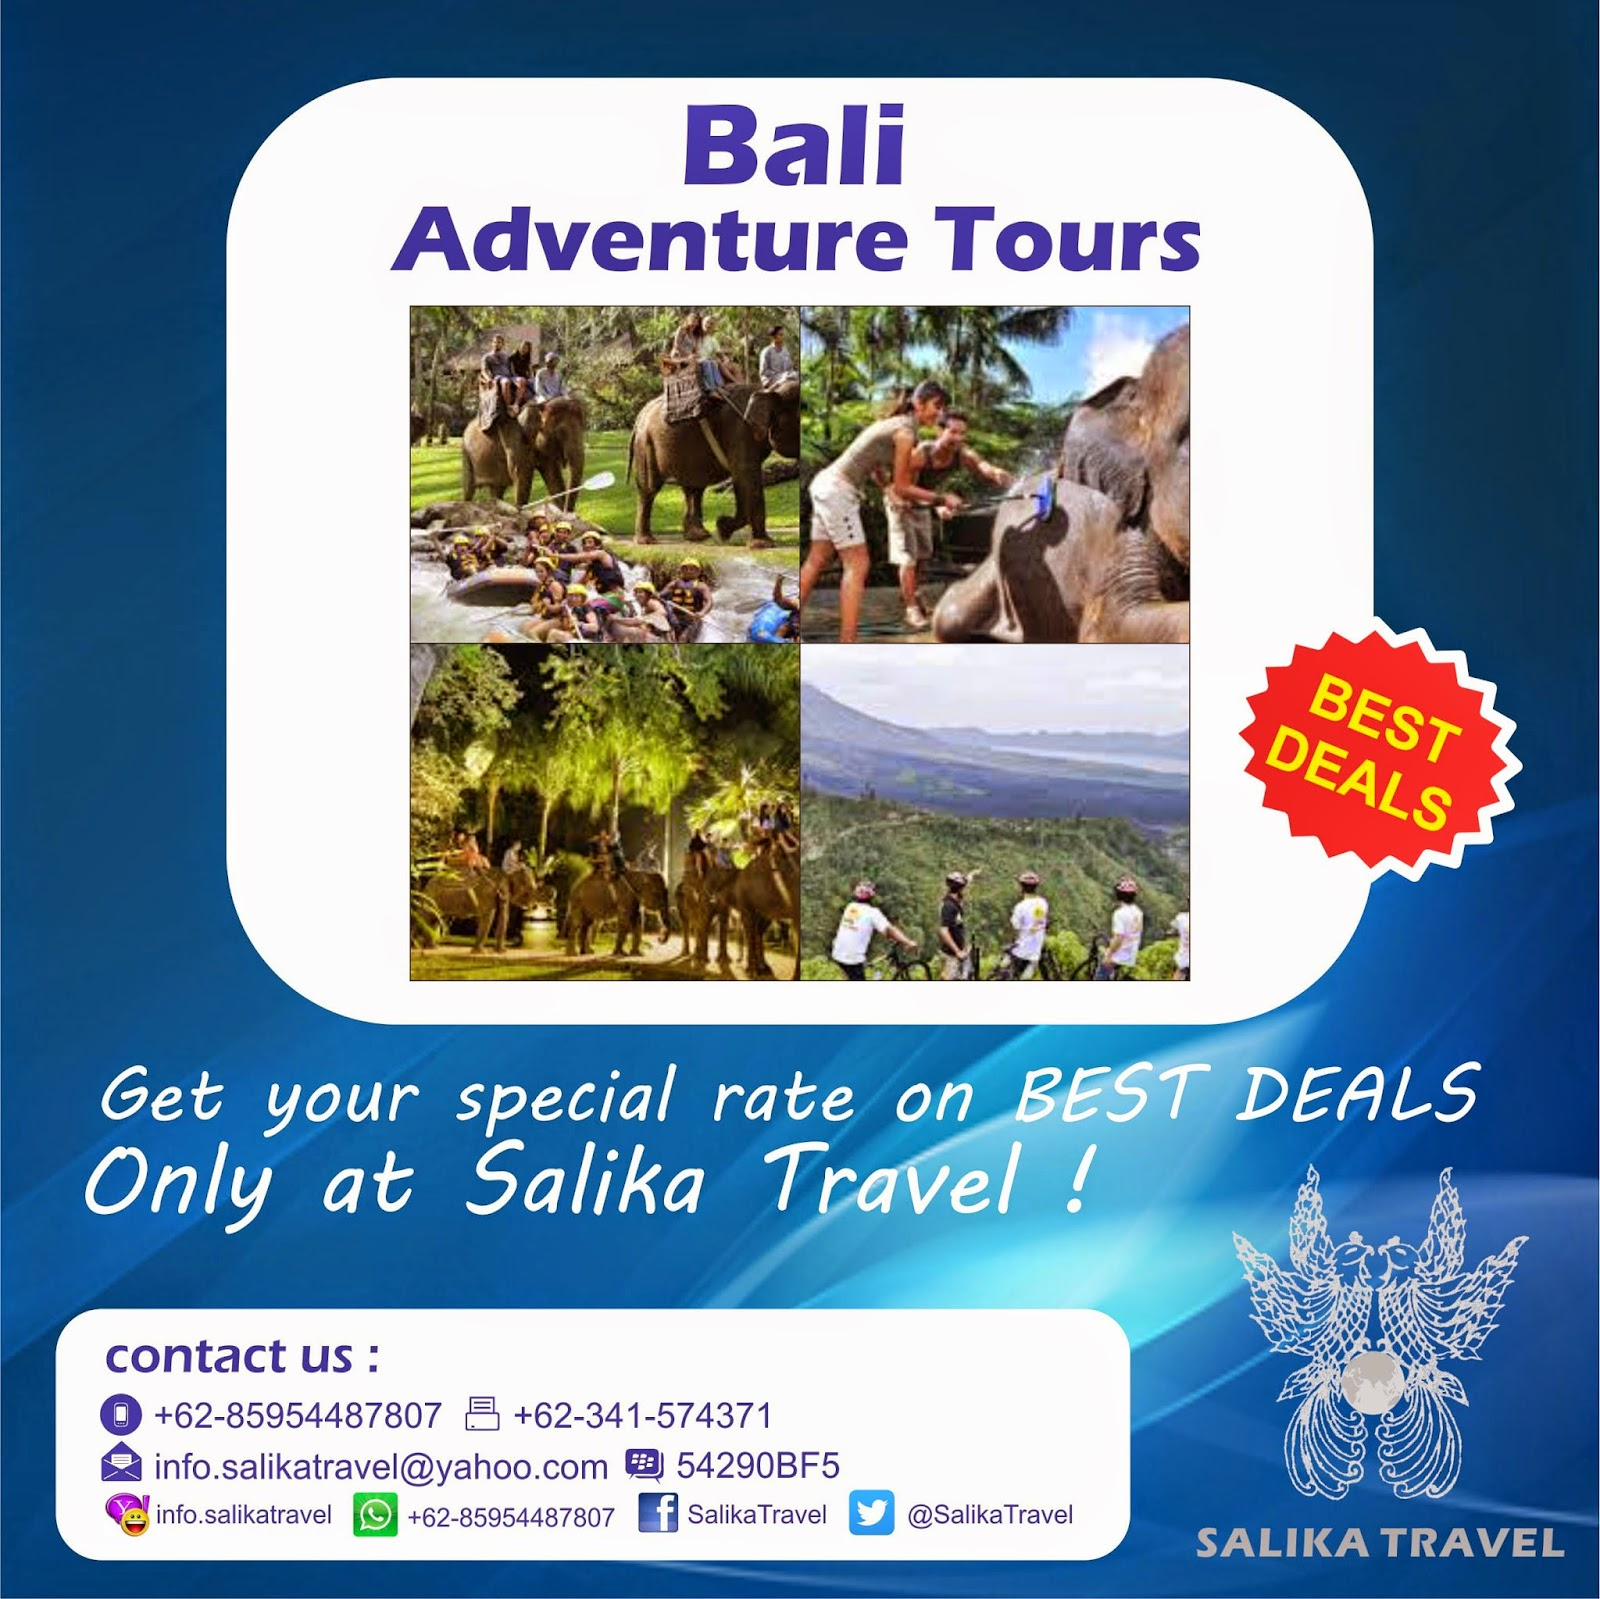 Bali Adventure Tours - Salika Travel